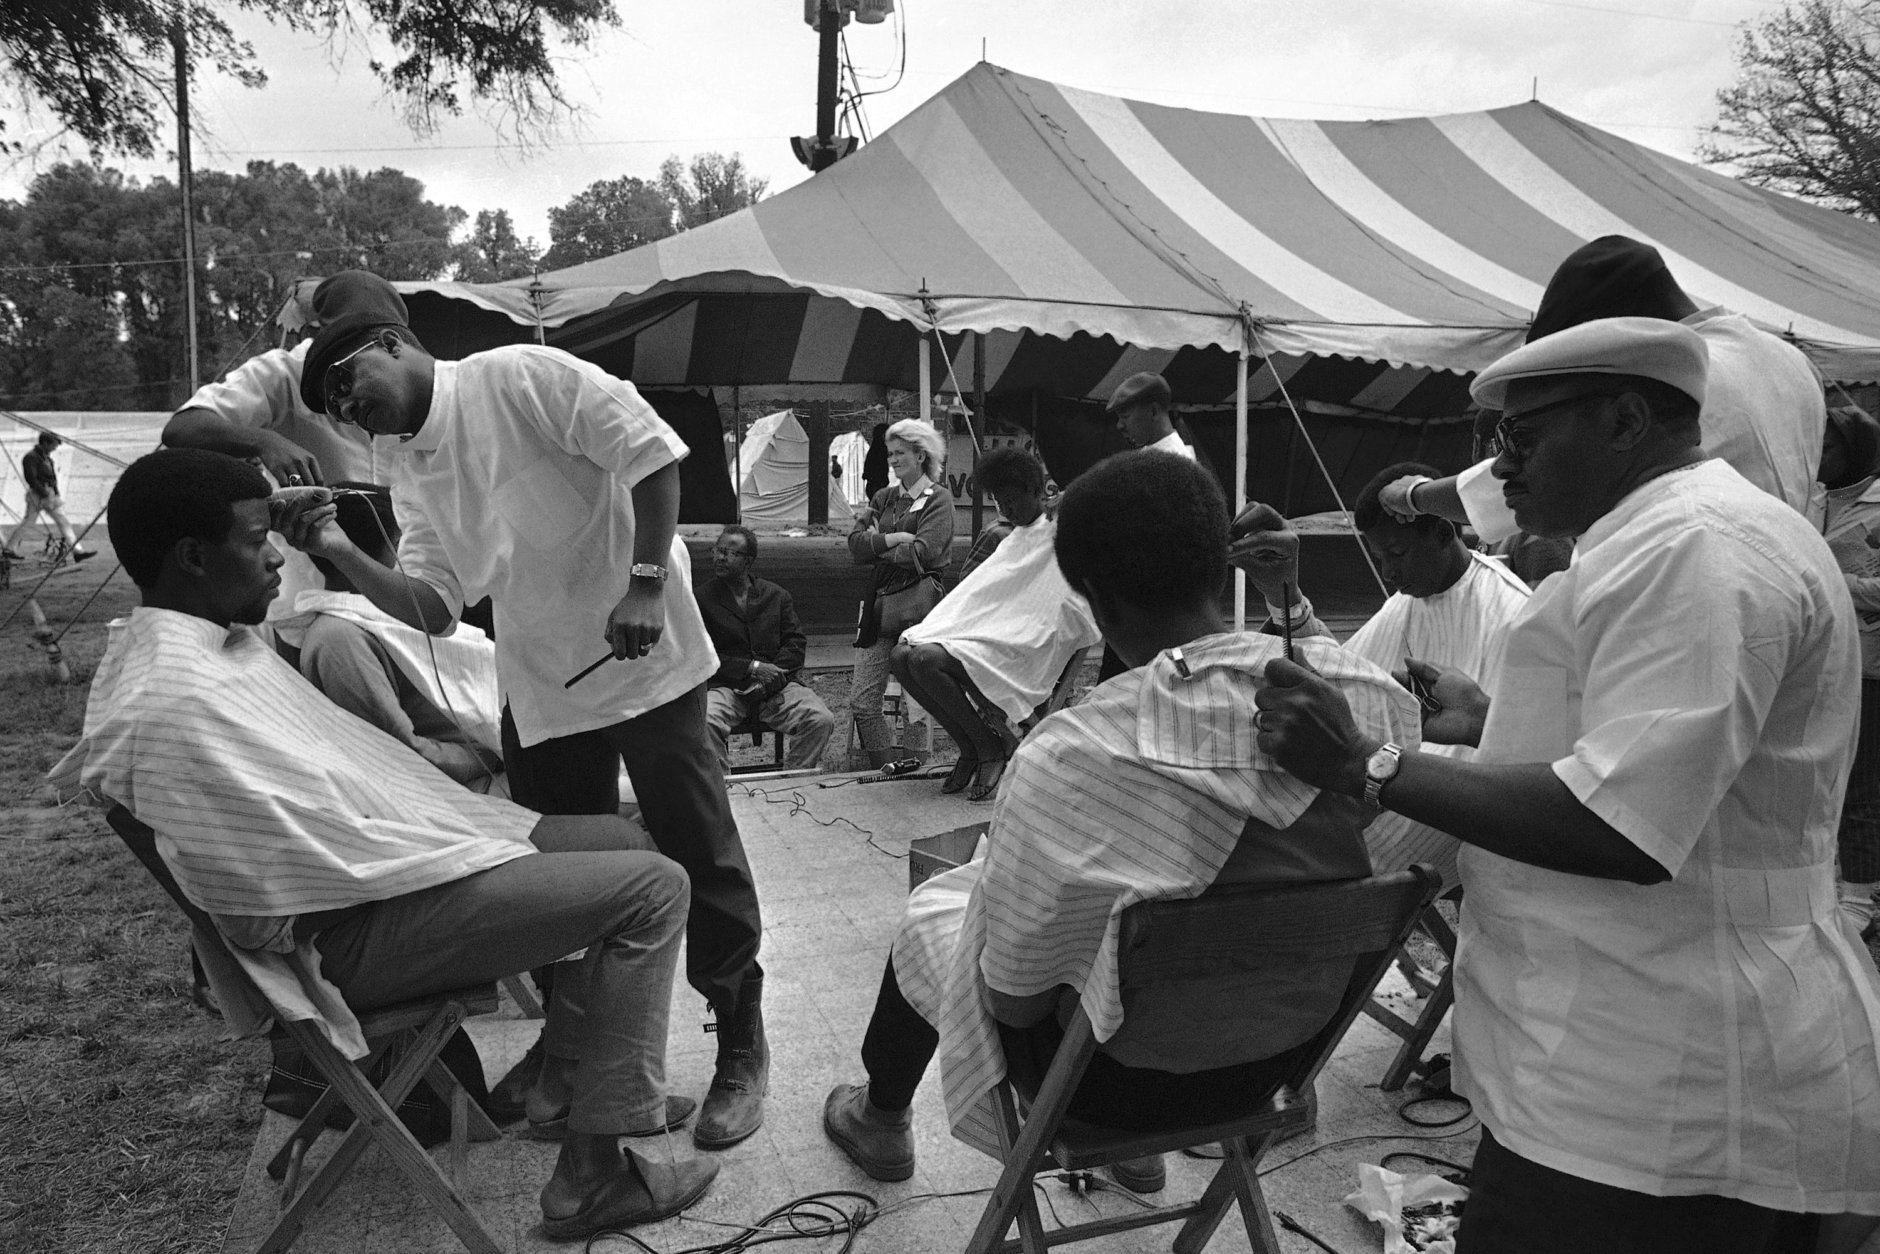 Five barbers go about their task, trimming the hair of some of the residents of Resurrection City in this open-air barber shop, May 20, 1968. (AP Photo/Bob Schutz)